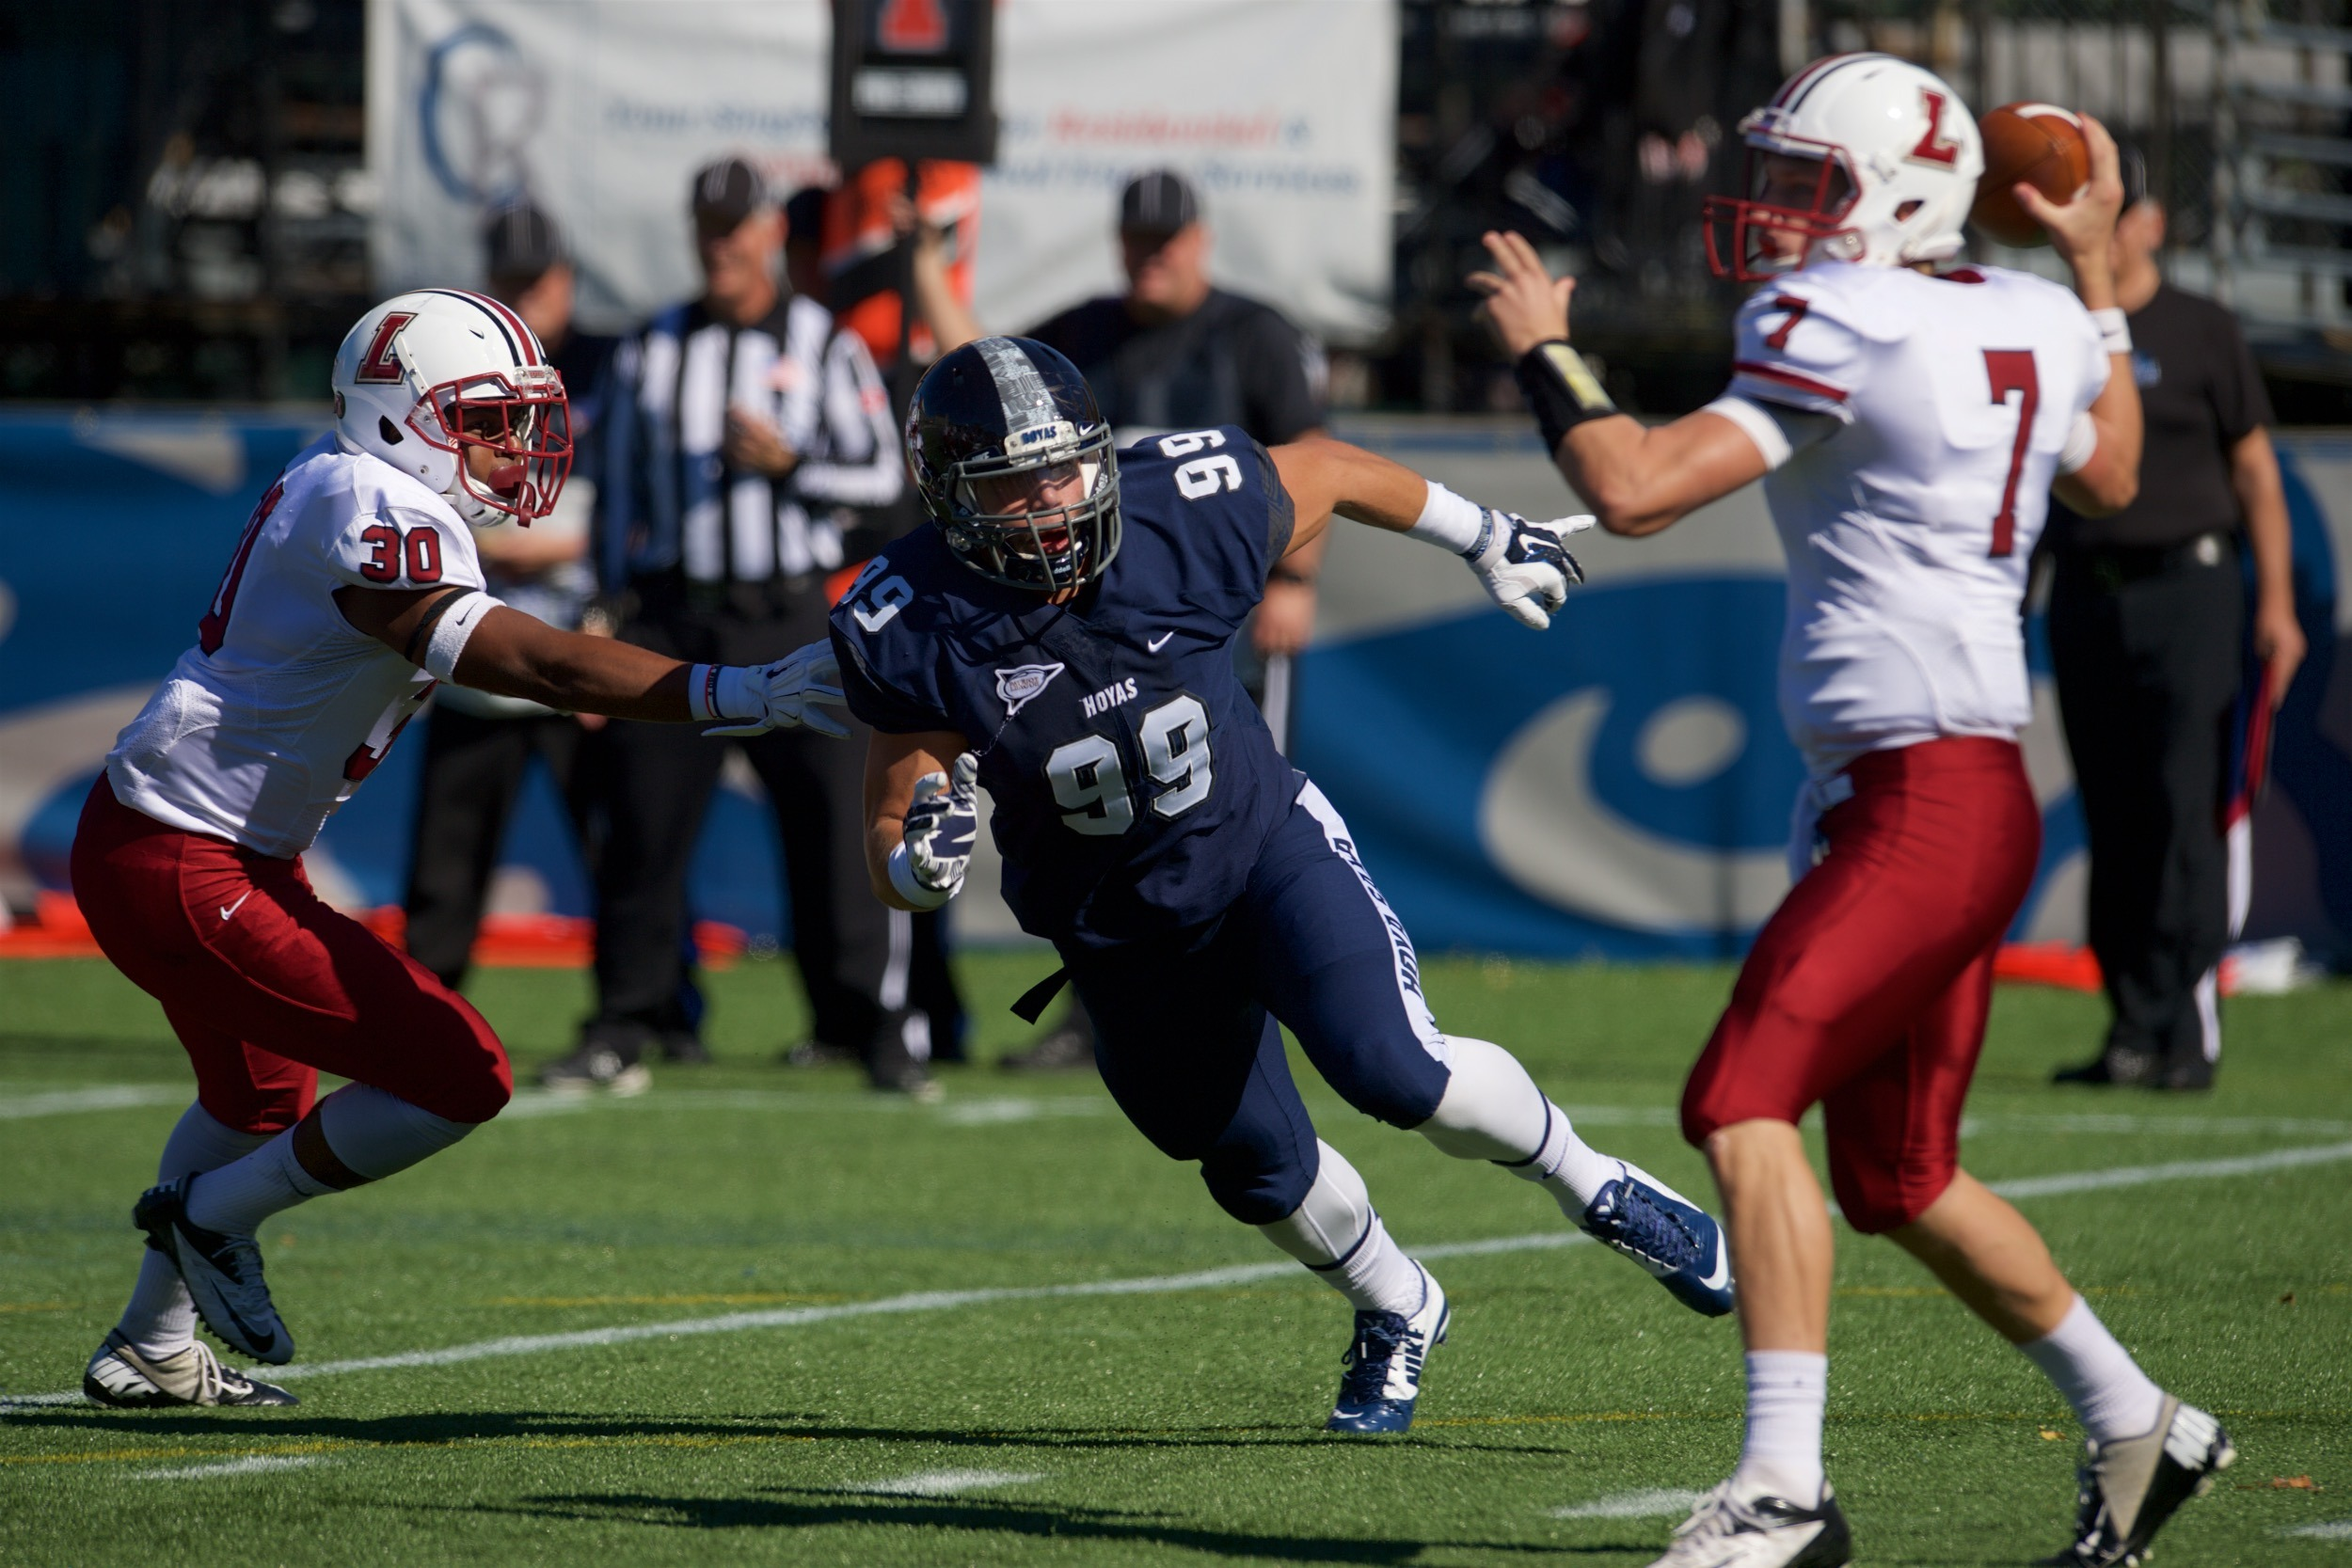 Phil Novacki was named to his first Patriot League All-Academic Team.